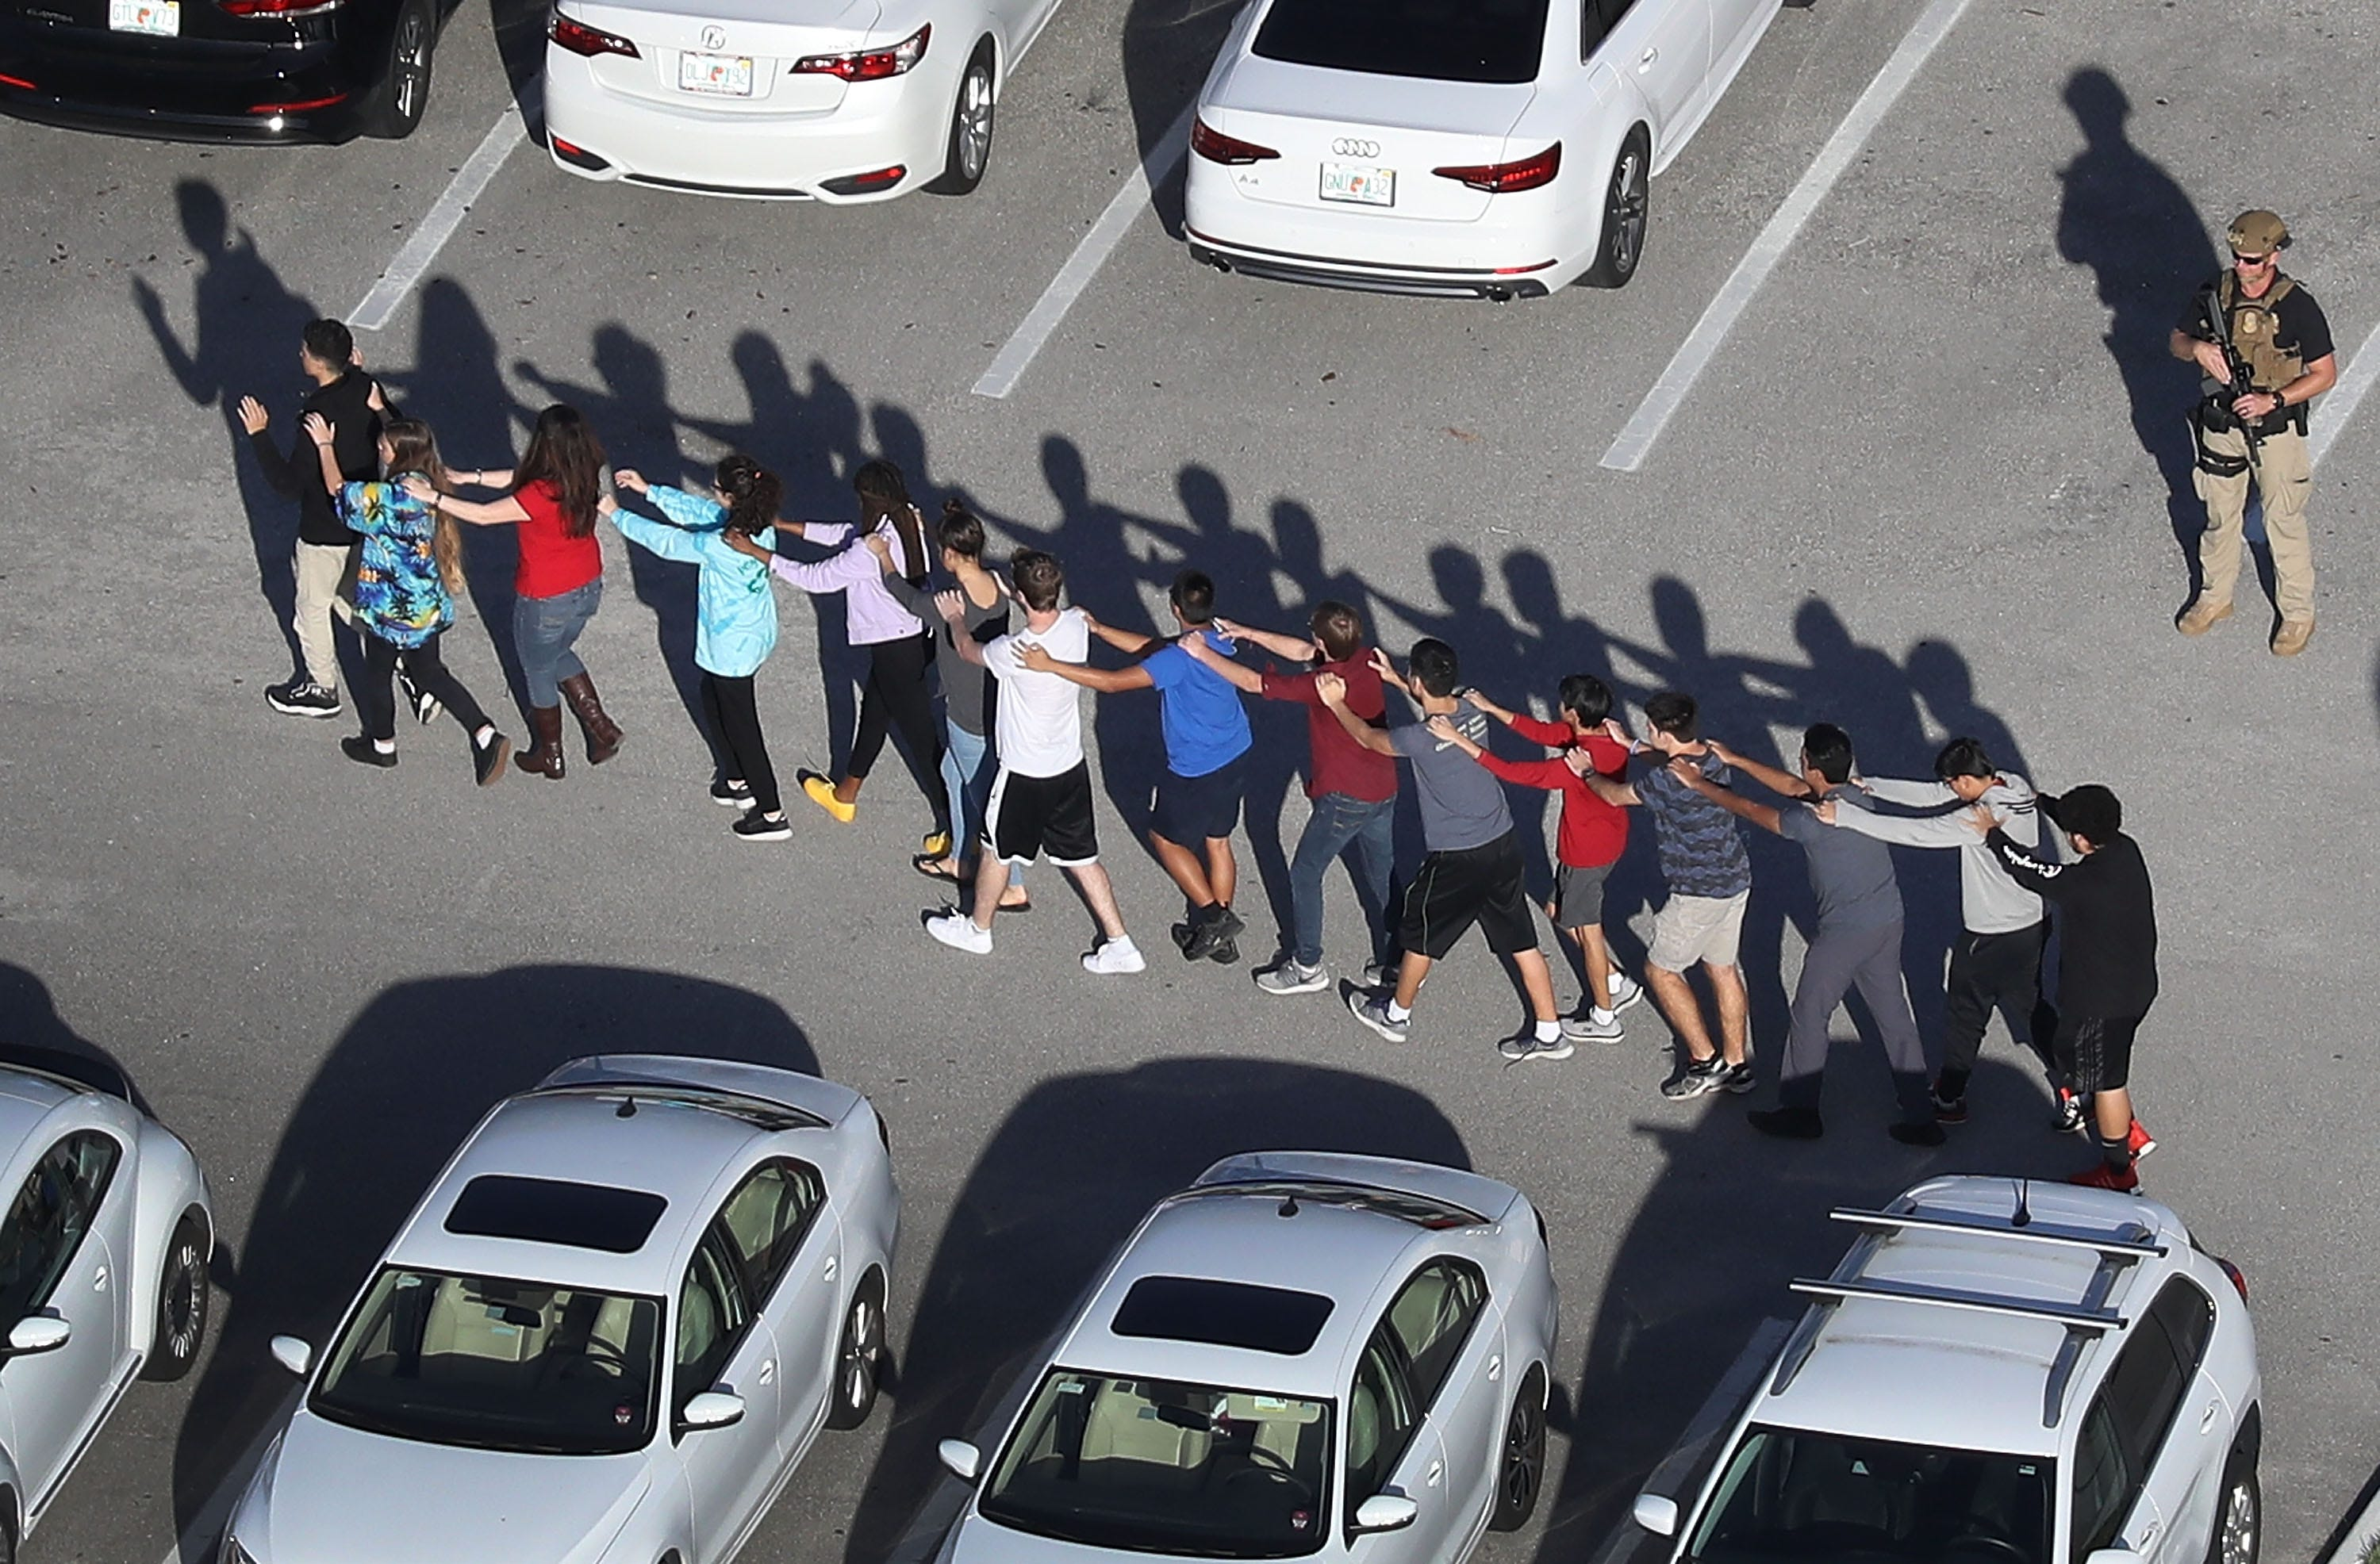 People are brought out of the Marjory Stoneman Douglas High School after a shooting at the school on February 14, 2018, in Parkland, Florida.